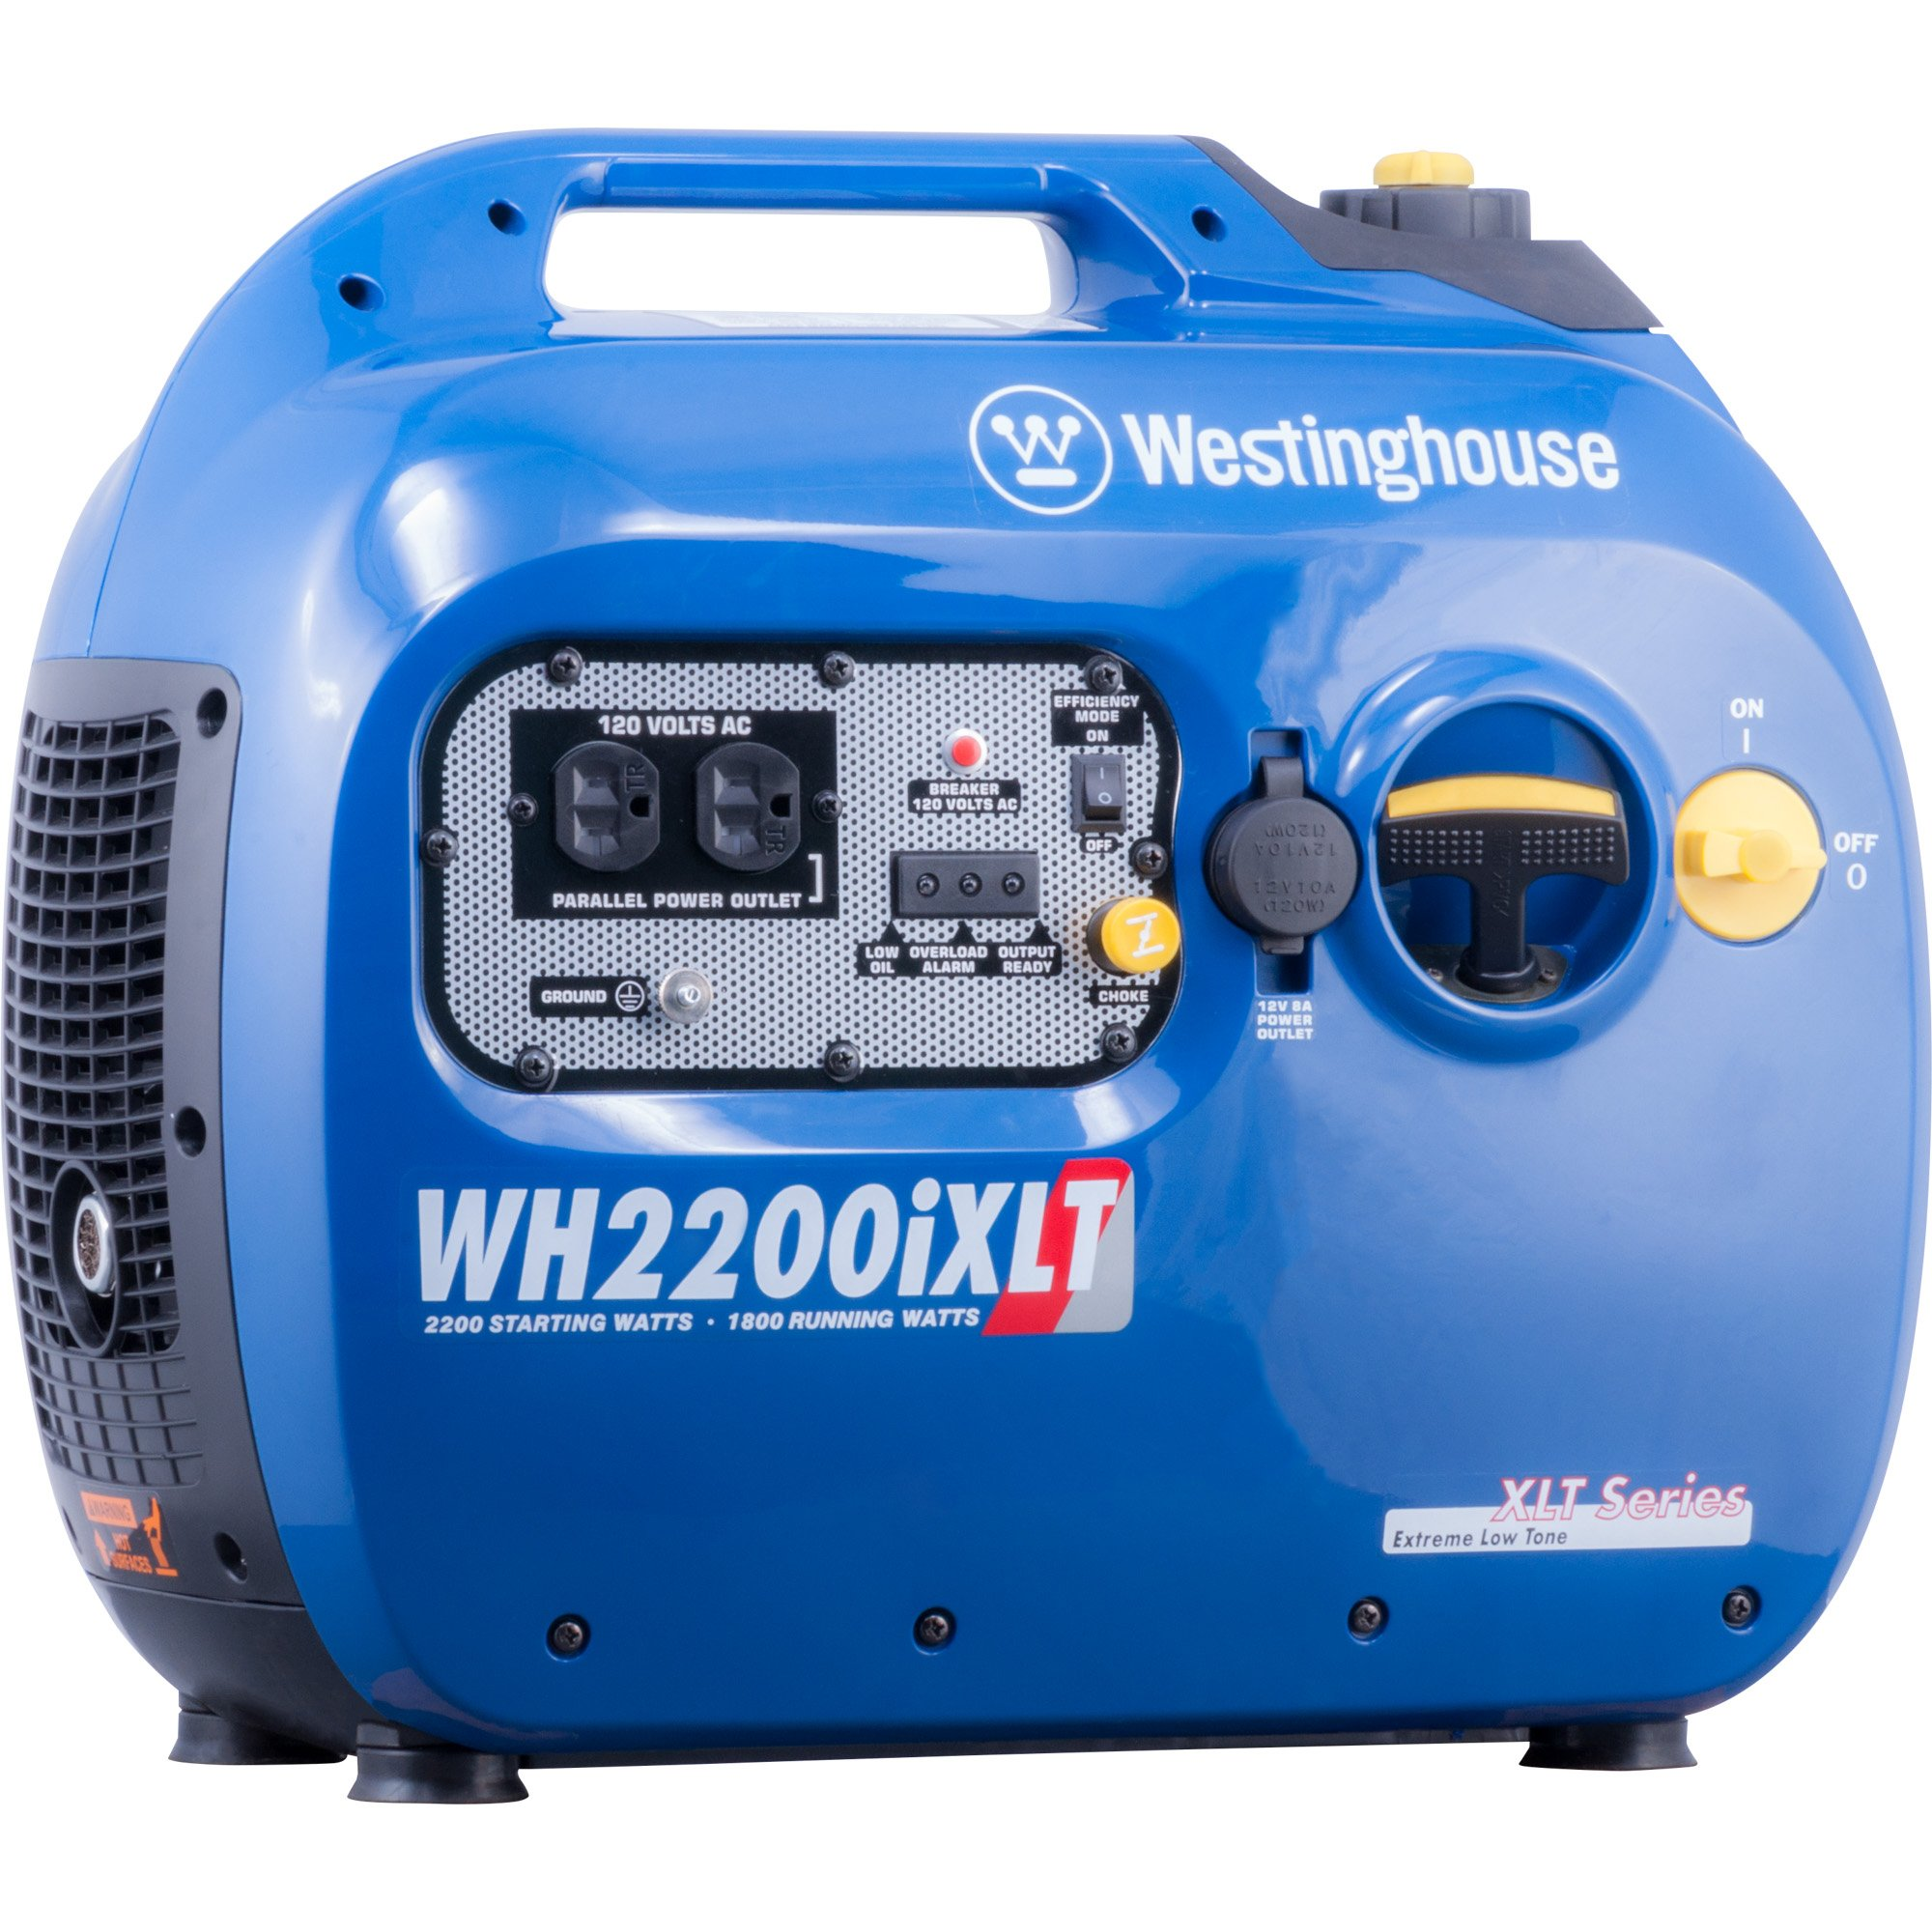 Westinghouse WH2200iXLT Portable Inverter Generator